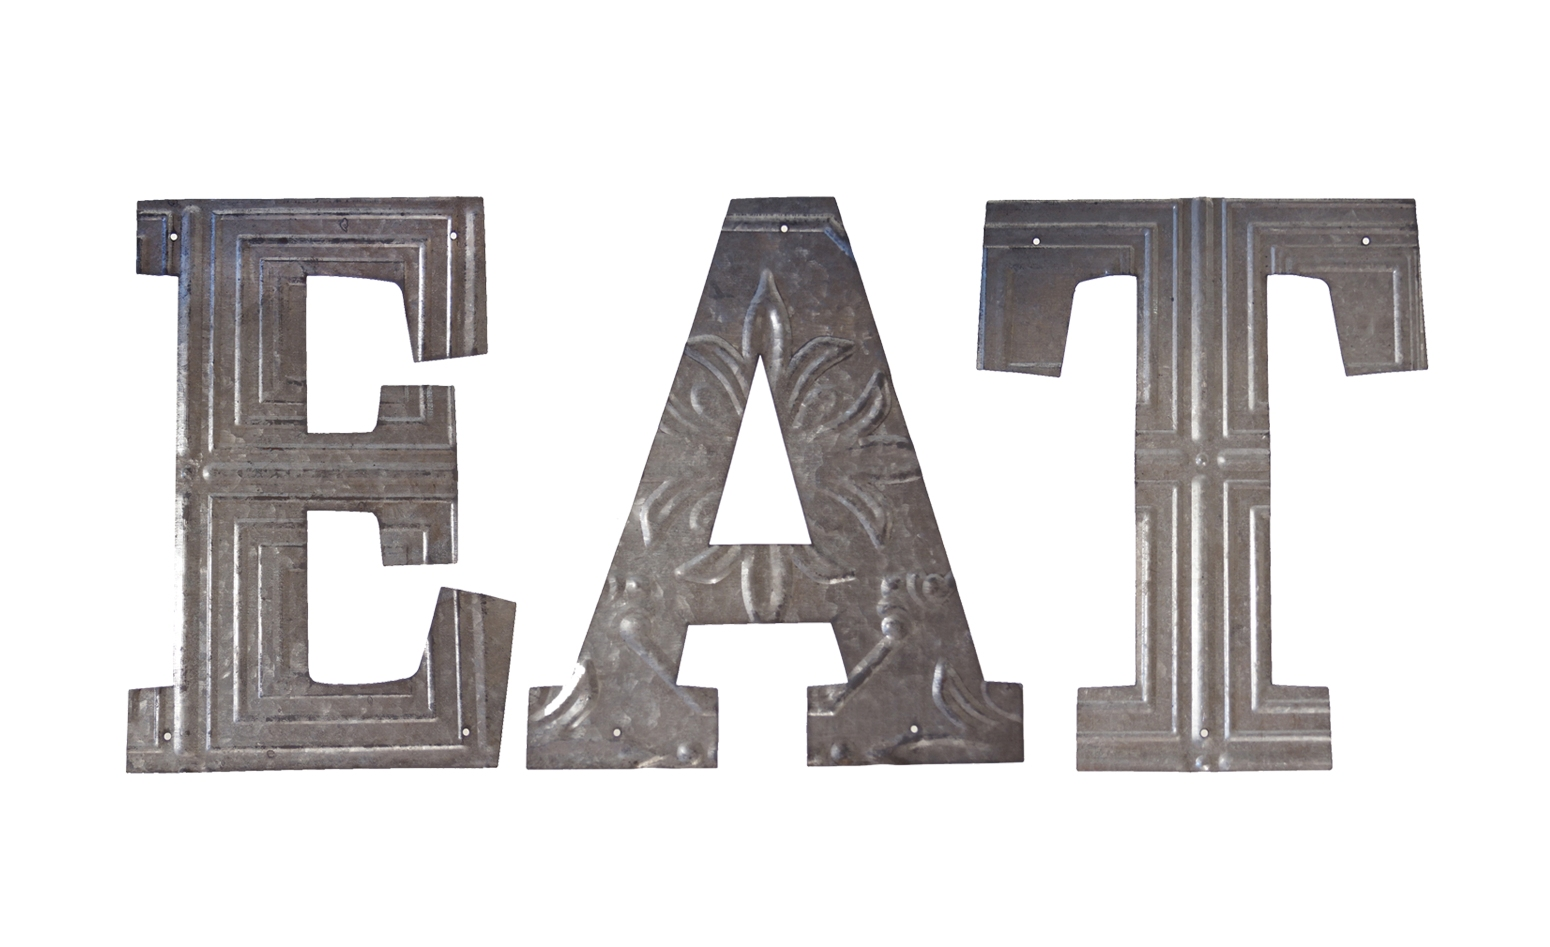 Eat Letters Kitchen Dining Bistro Wall Decor Cut Out Pressed Metal